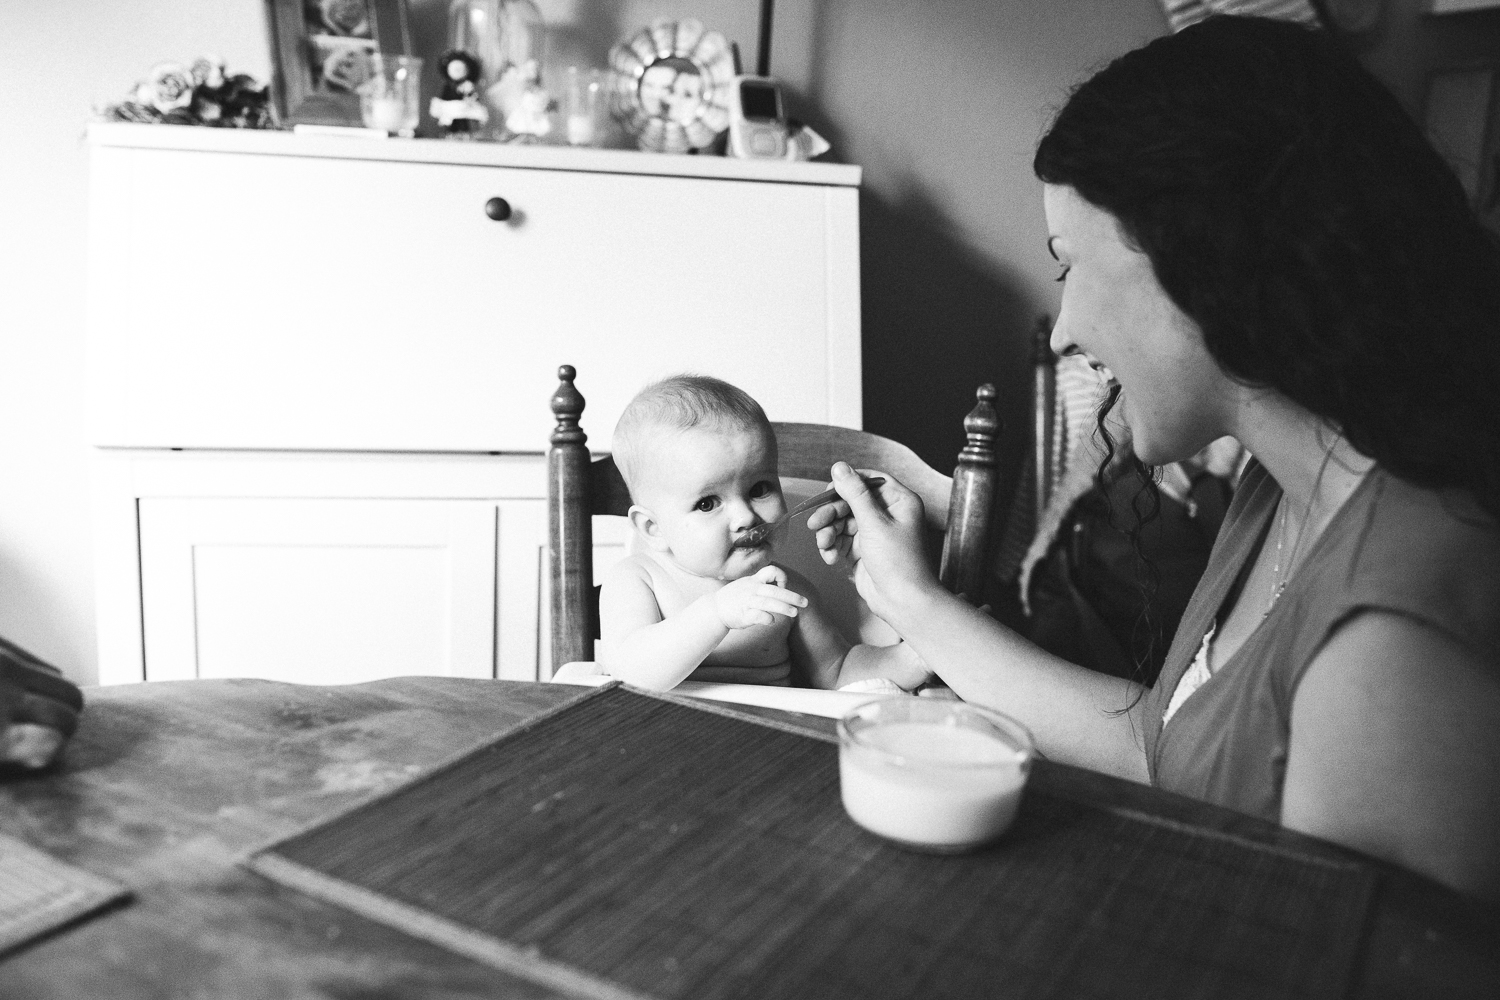 infant eating baby food